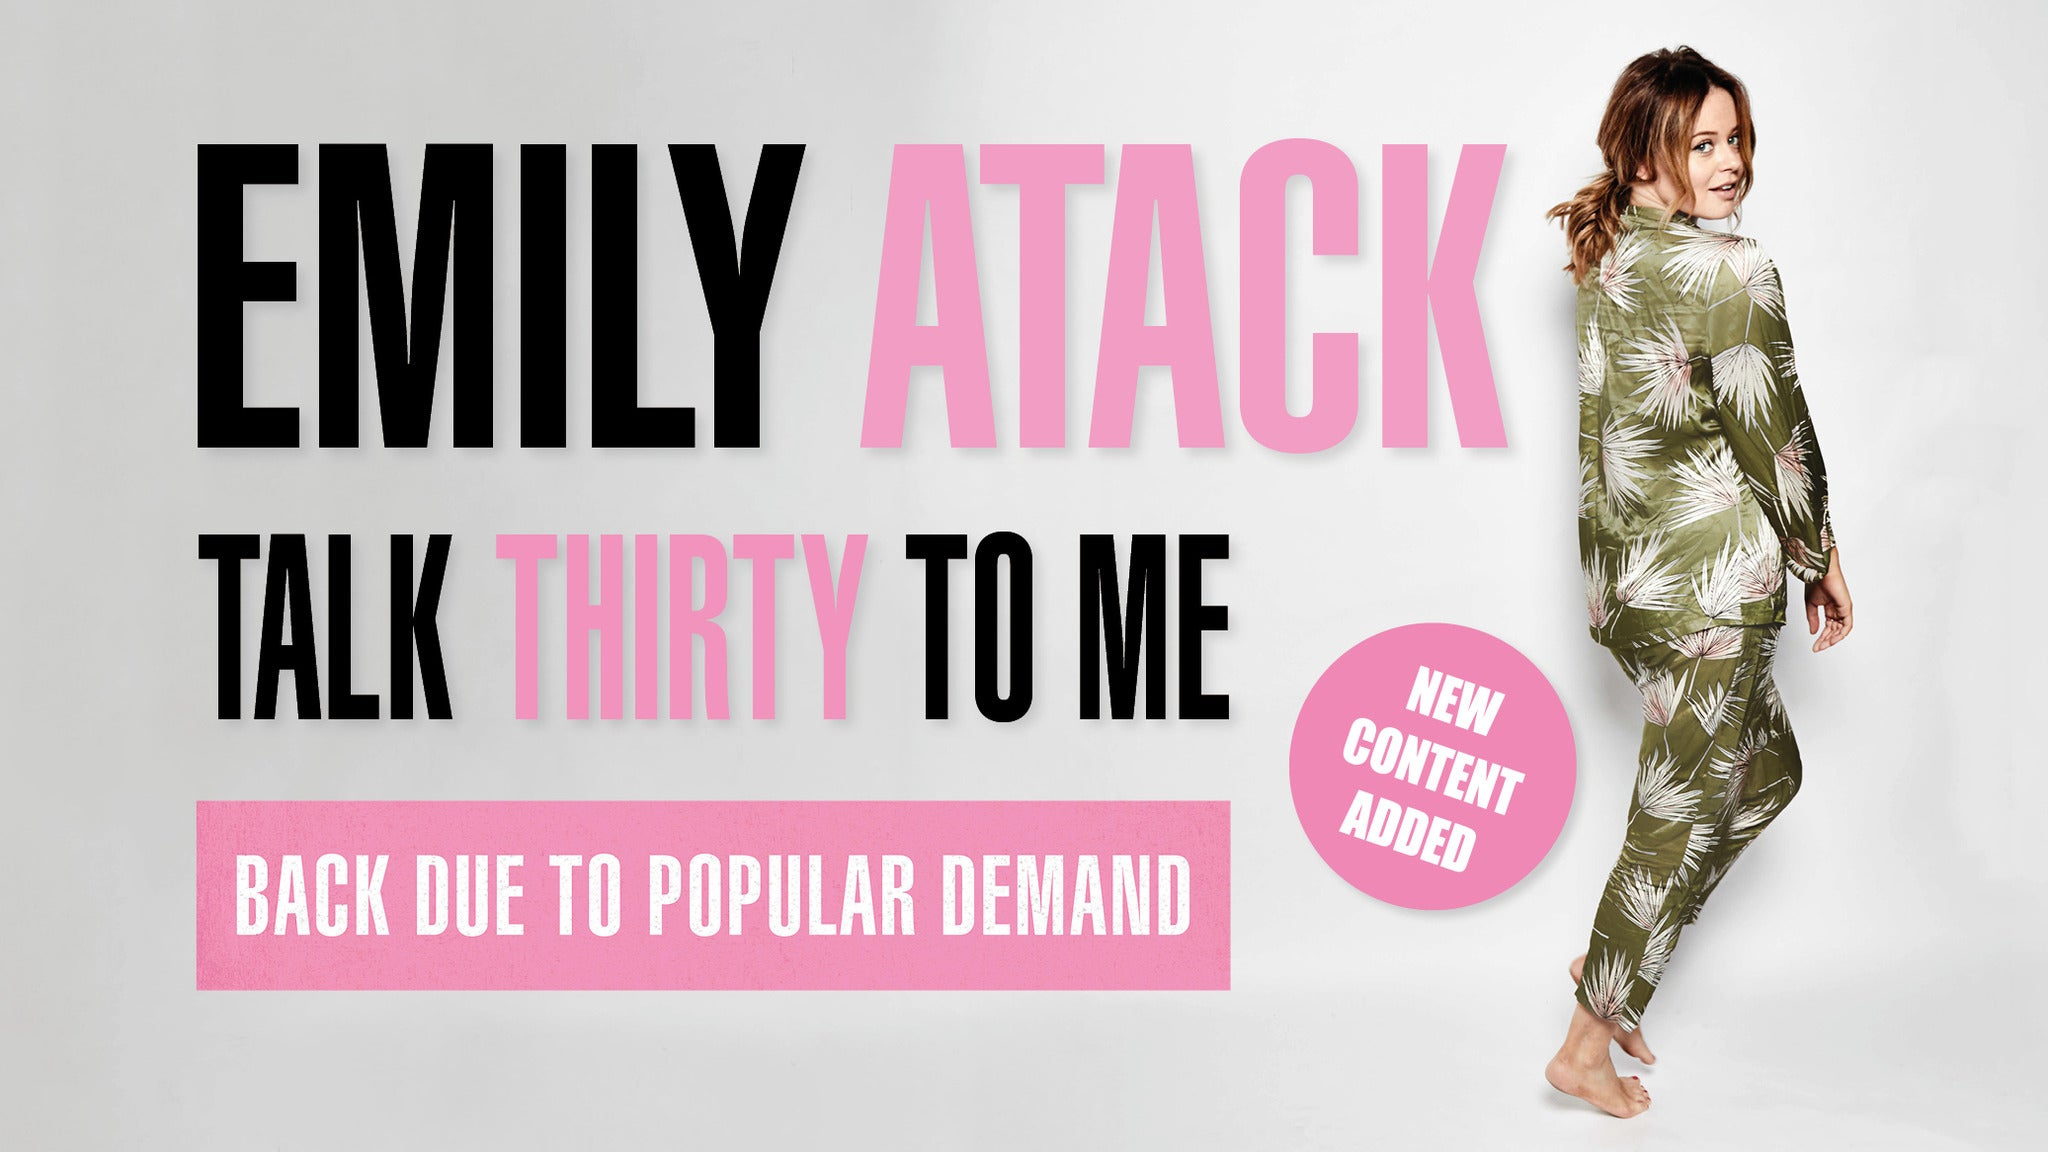 Emily Atack: Talk Thirty To Me Seating Plans